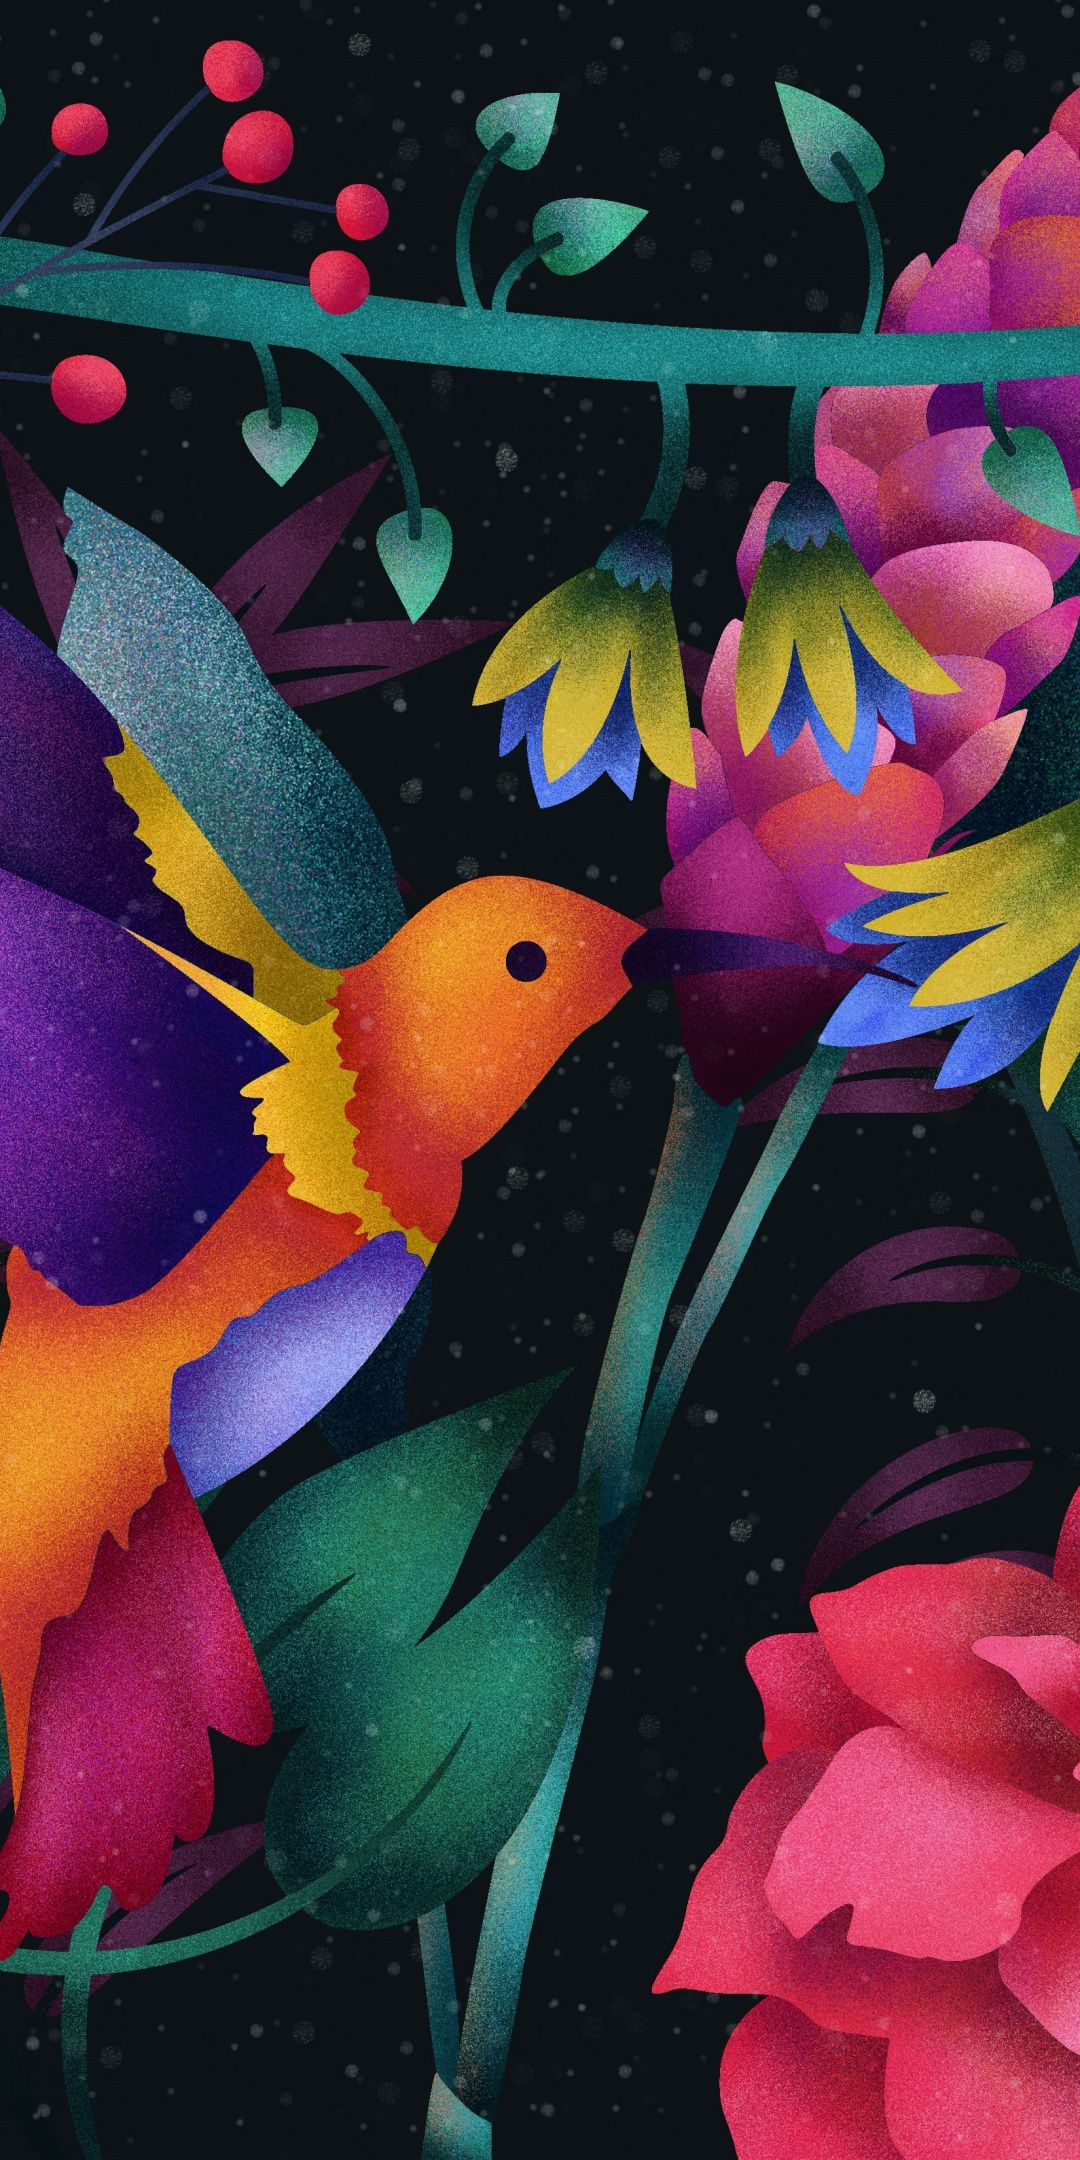 Hummingbird Abstract Colorful Flowers 1080x2160 Wallpaper Flower Art Flower Illustration Hummingbird Wallpaper